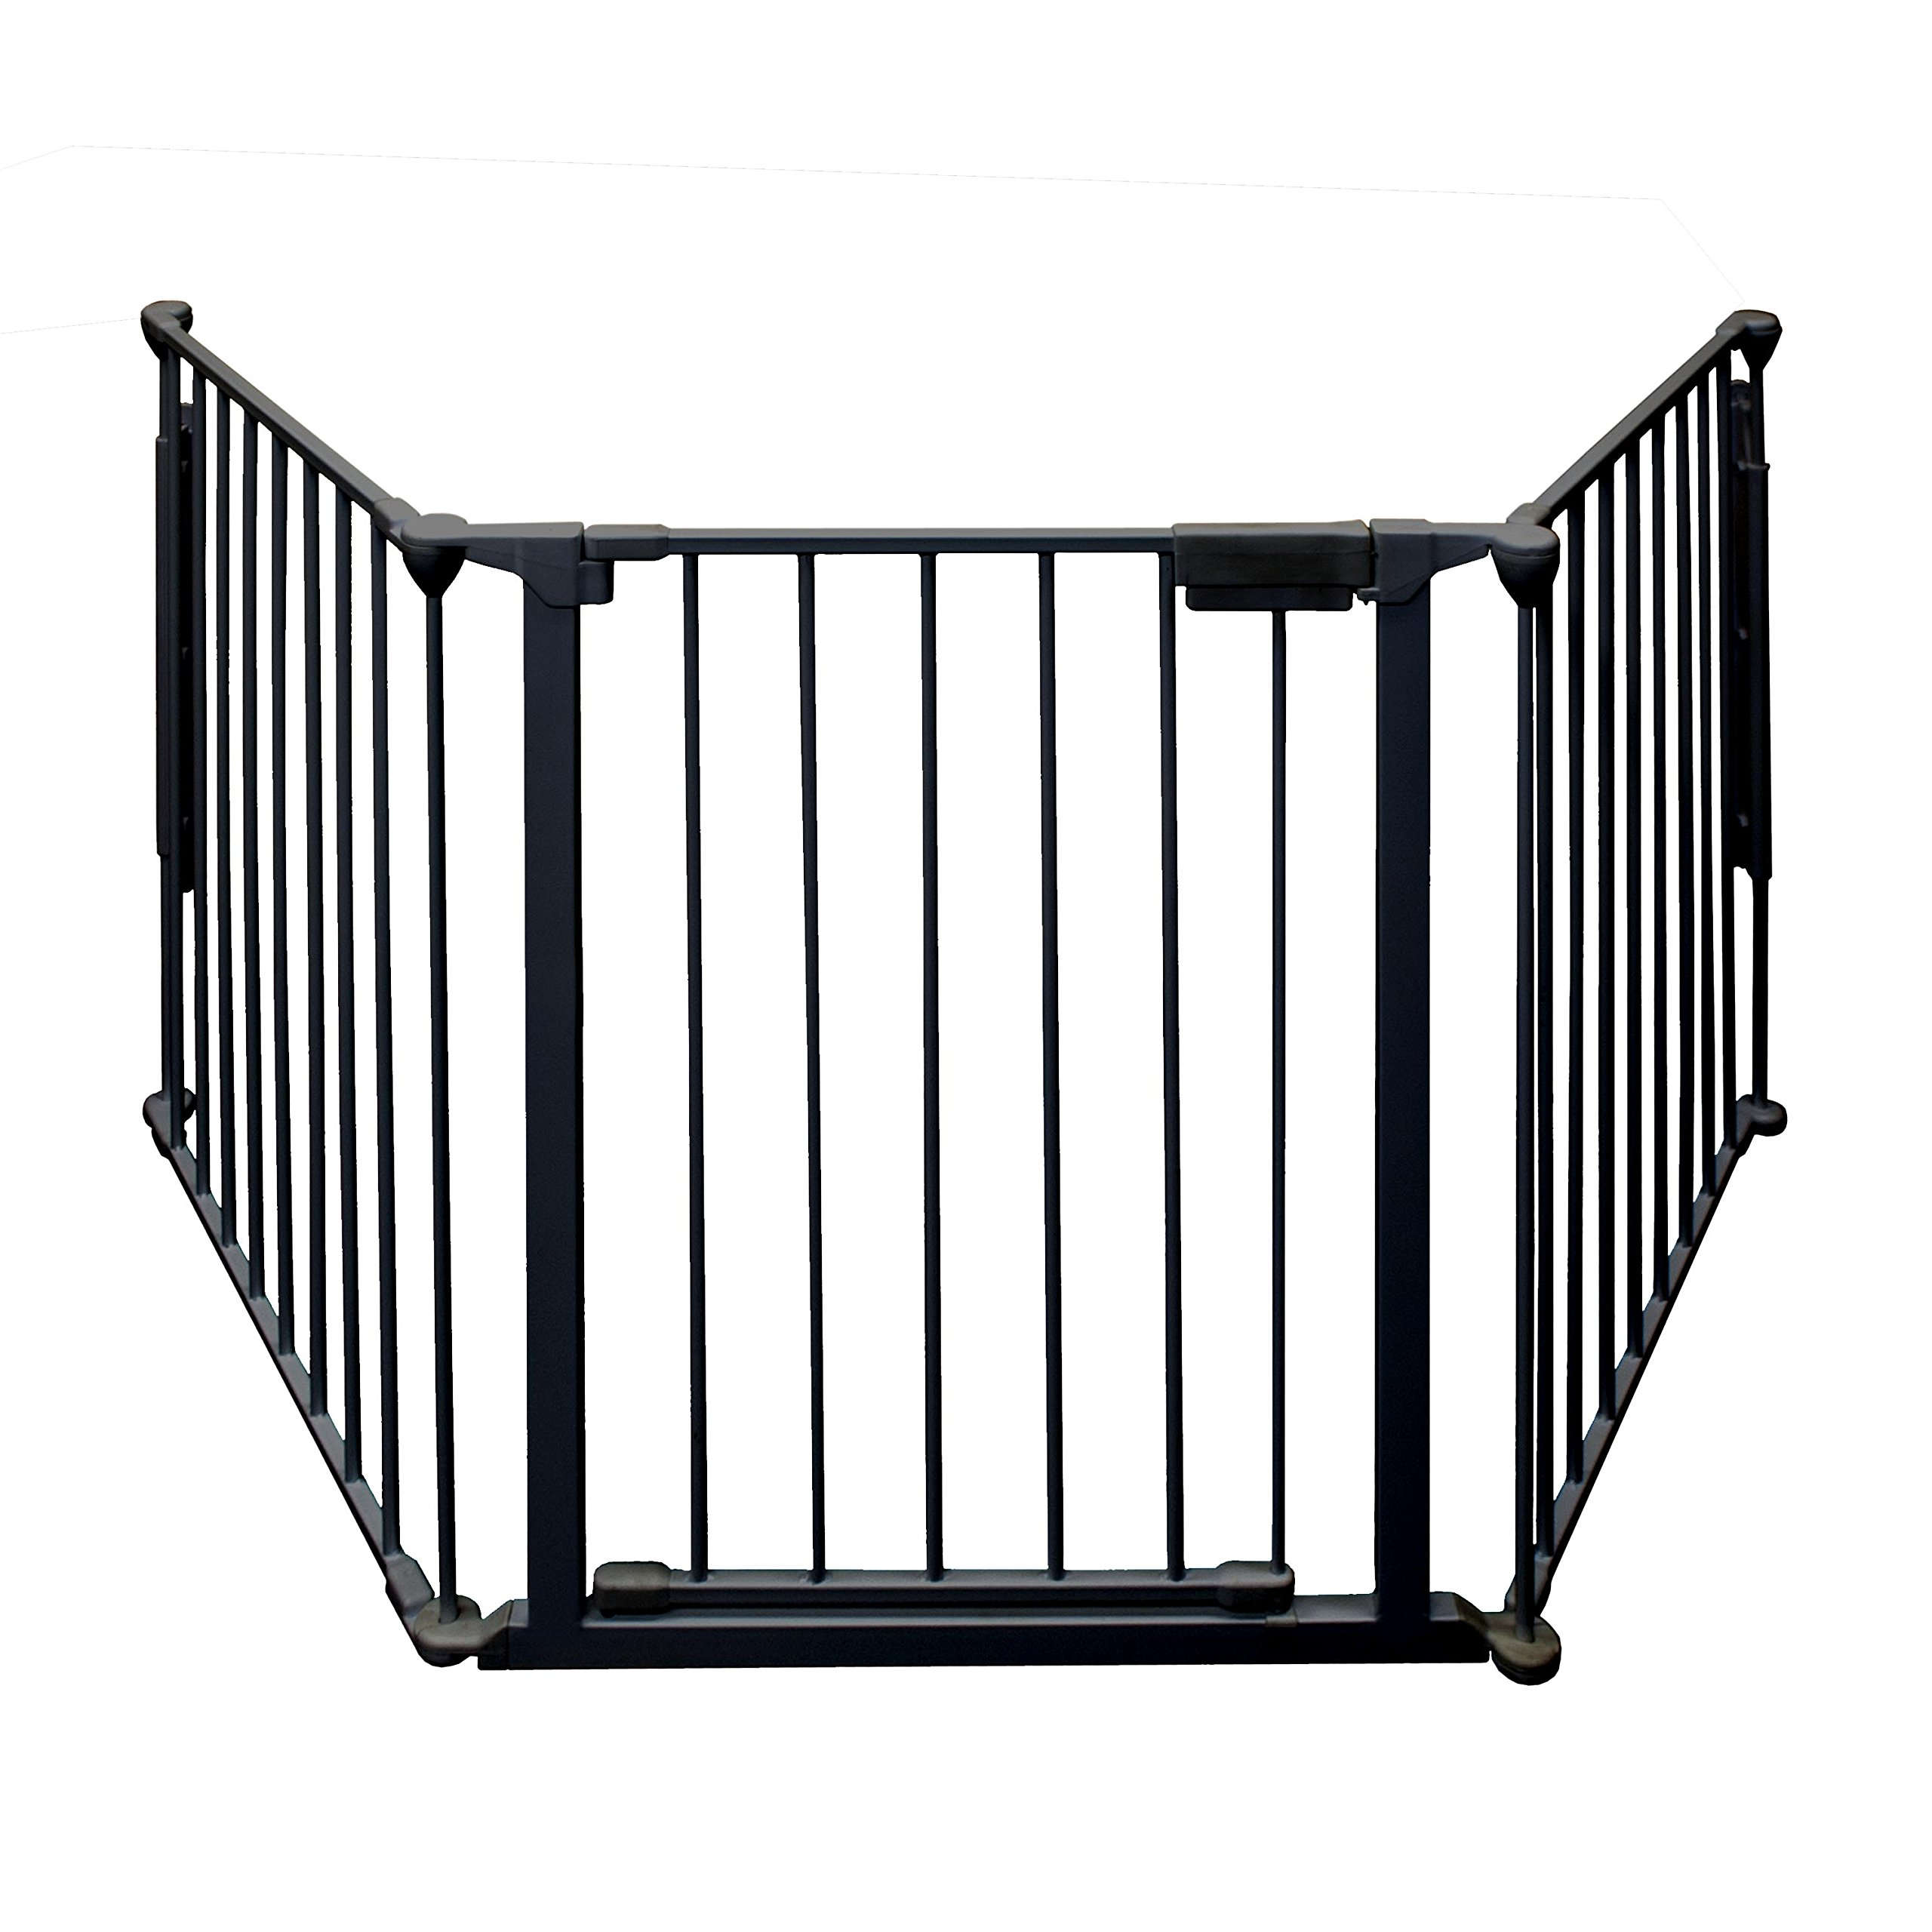 ALEKO SG03BK Fireplace Fire Gate Safety Fence Cover Child Safety Gate, 77 Inches Black